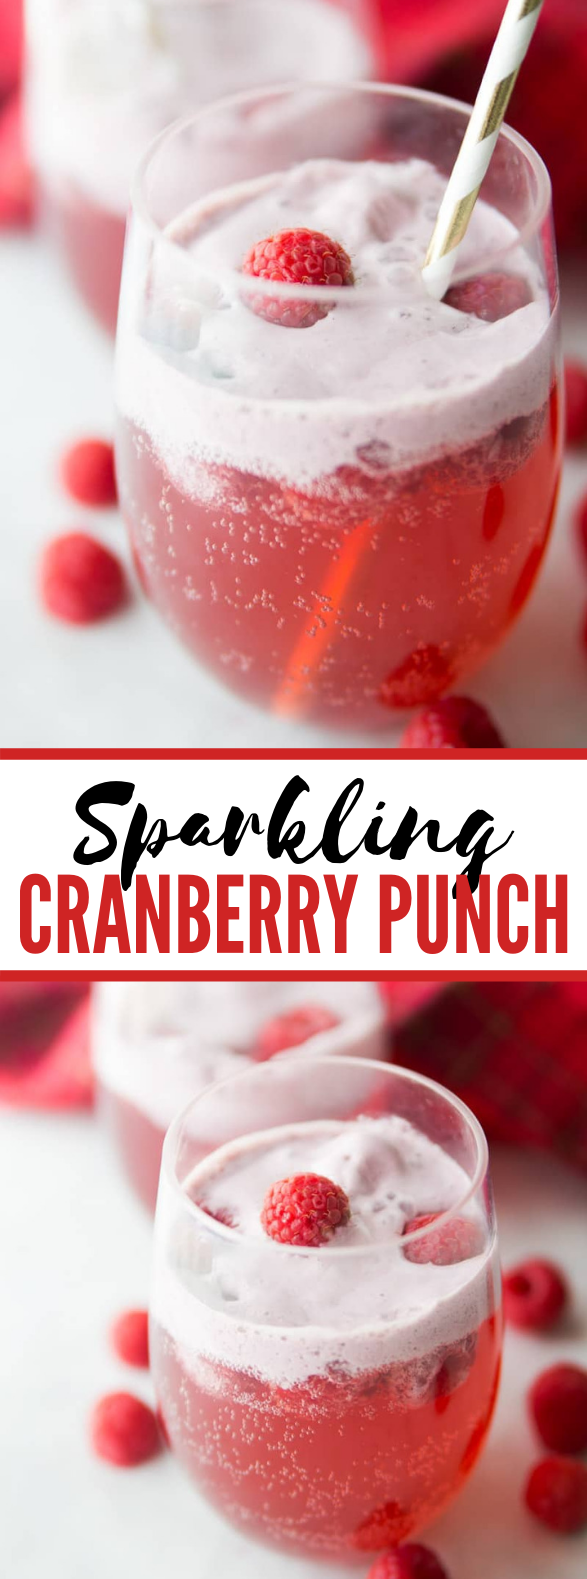 CRANBERRY RASPBERRY HOLIDAY PUNCH #drinks #kidfriendly